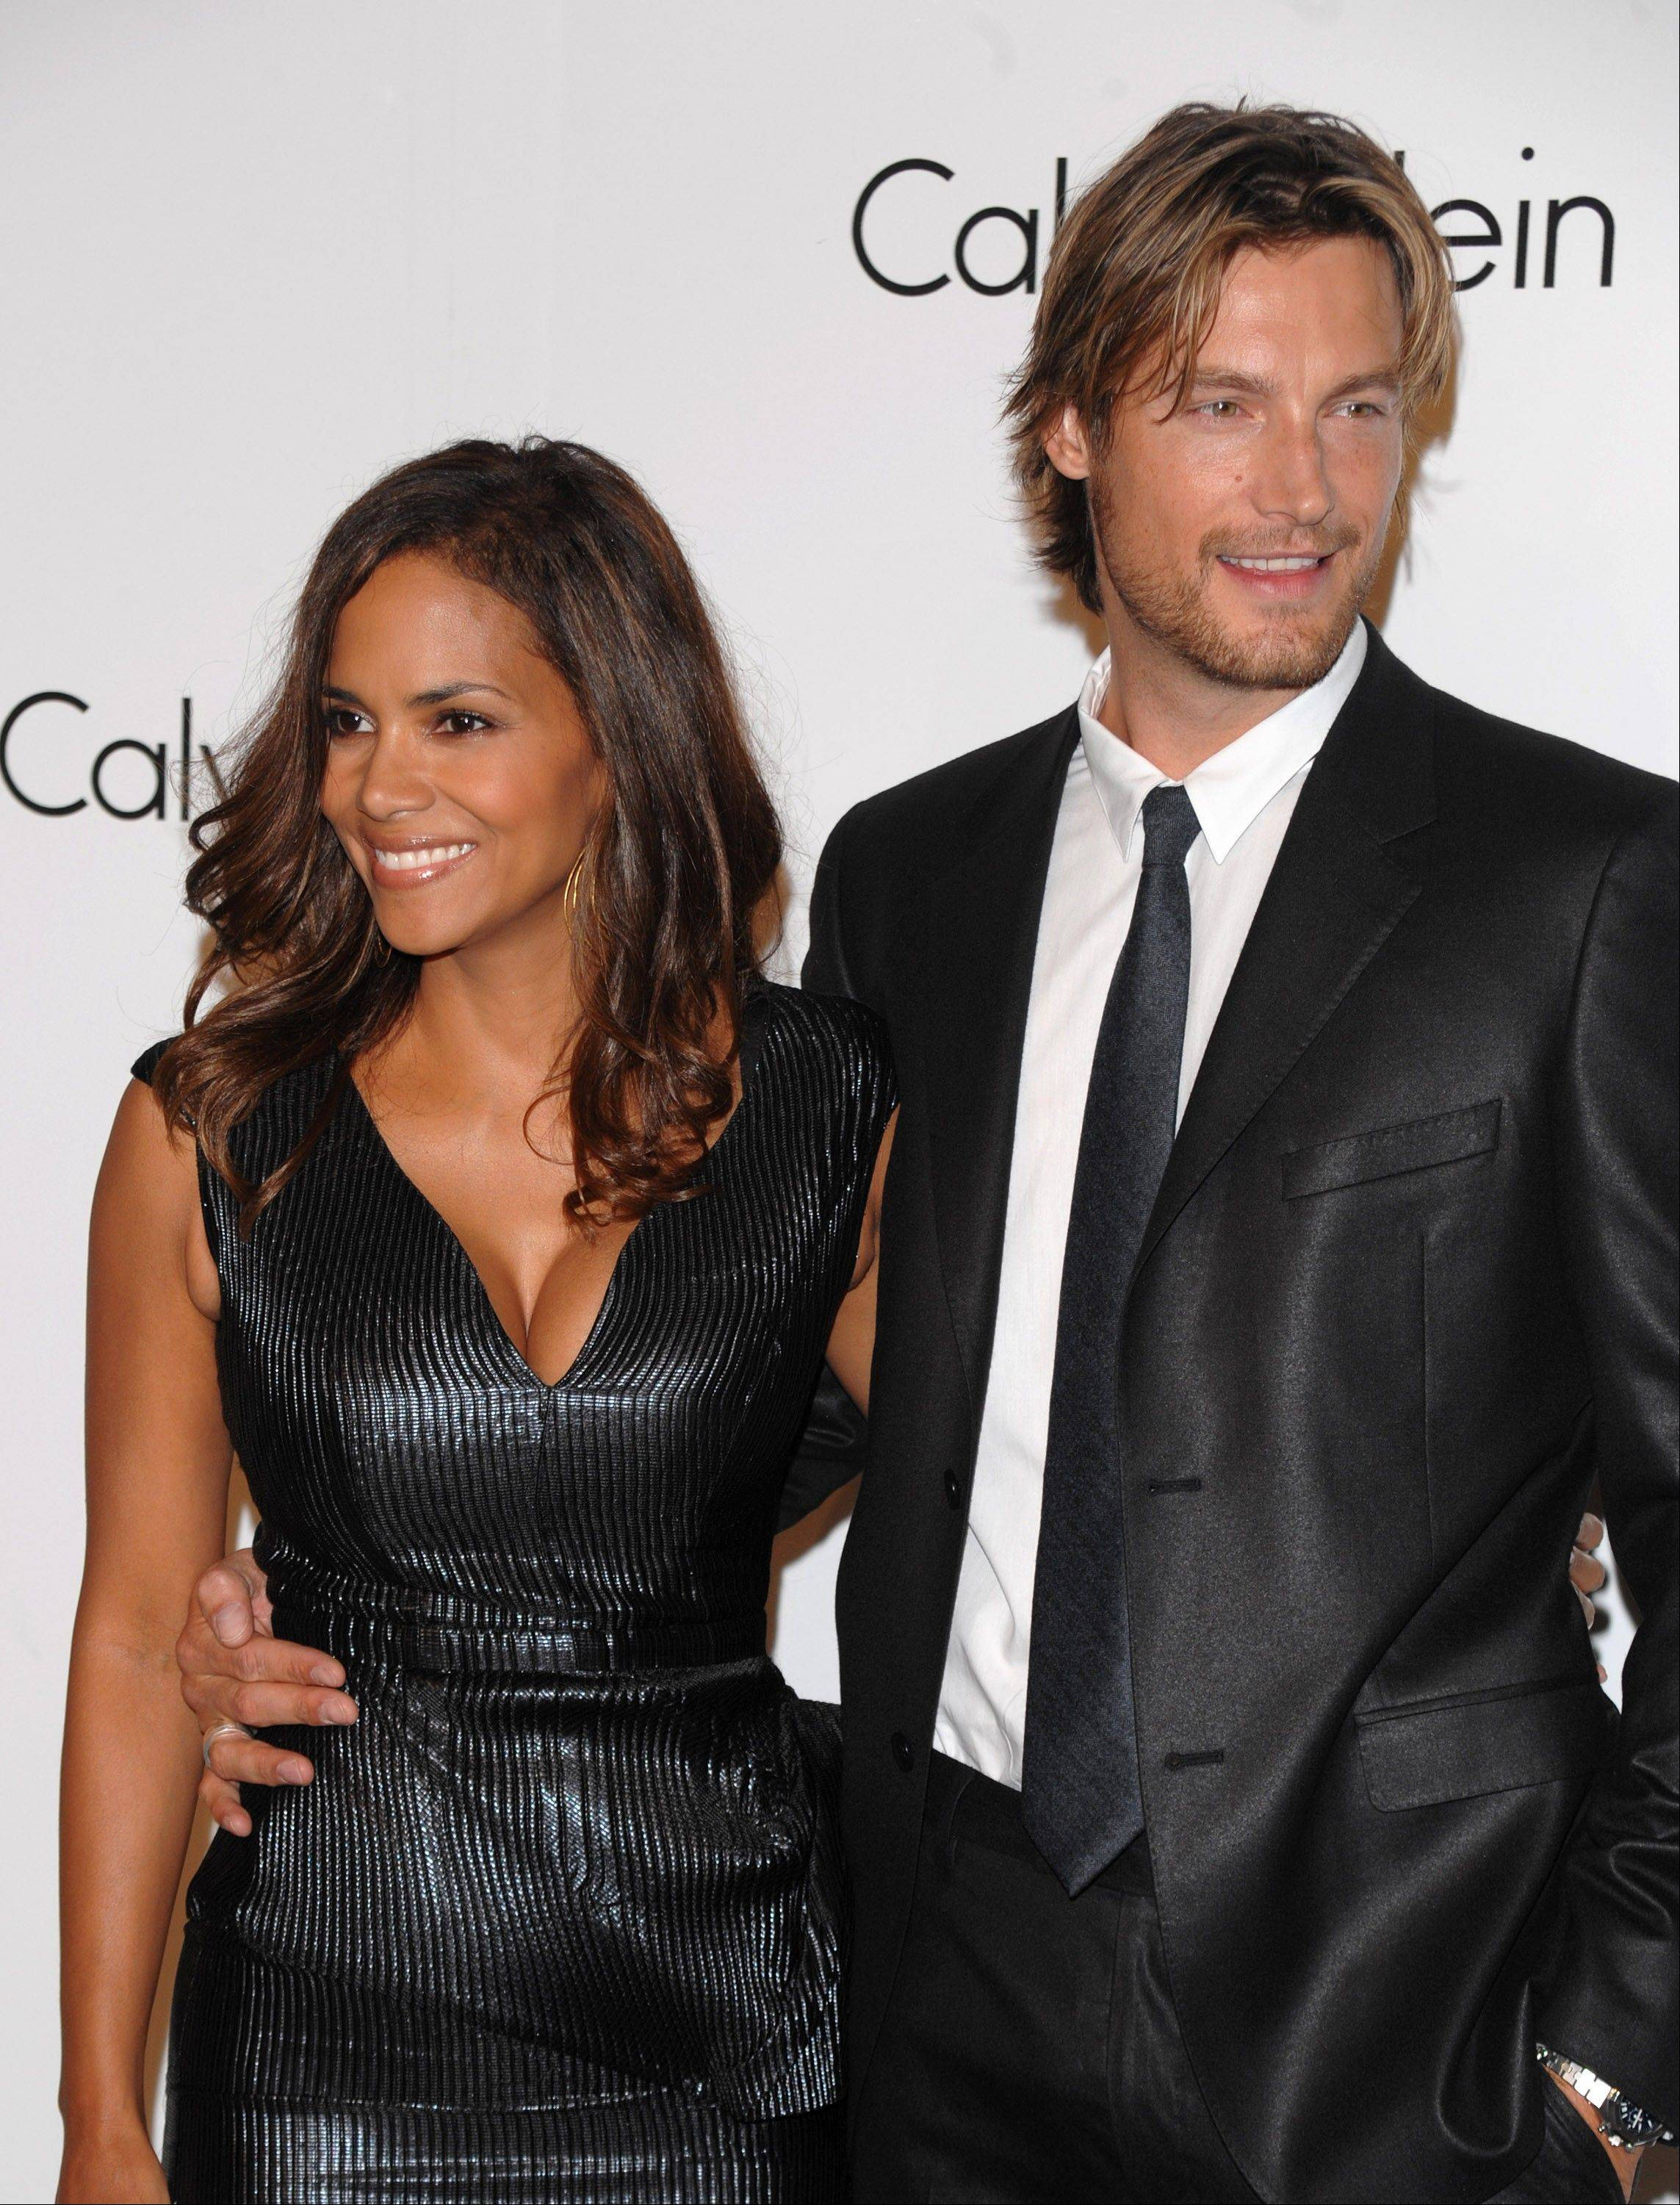 Halle Berry�s ex-boyfriend Gabriel Aubry, right, was arrested for investigation of battery after he and the Oscar-winning actress� current boyfriend got into a fight at her California home, police said Thursday.